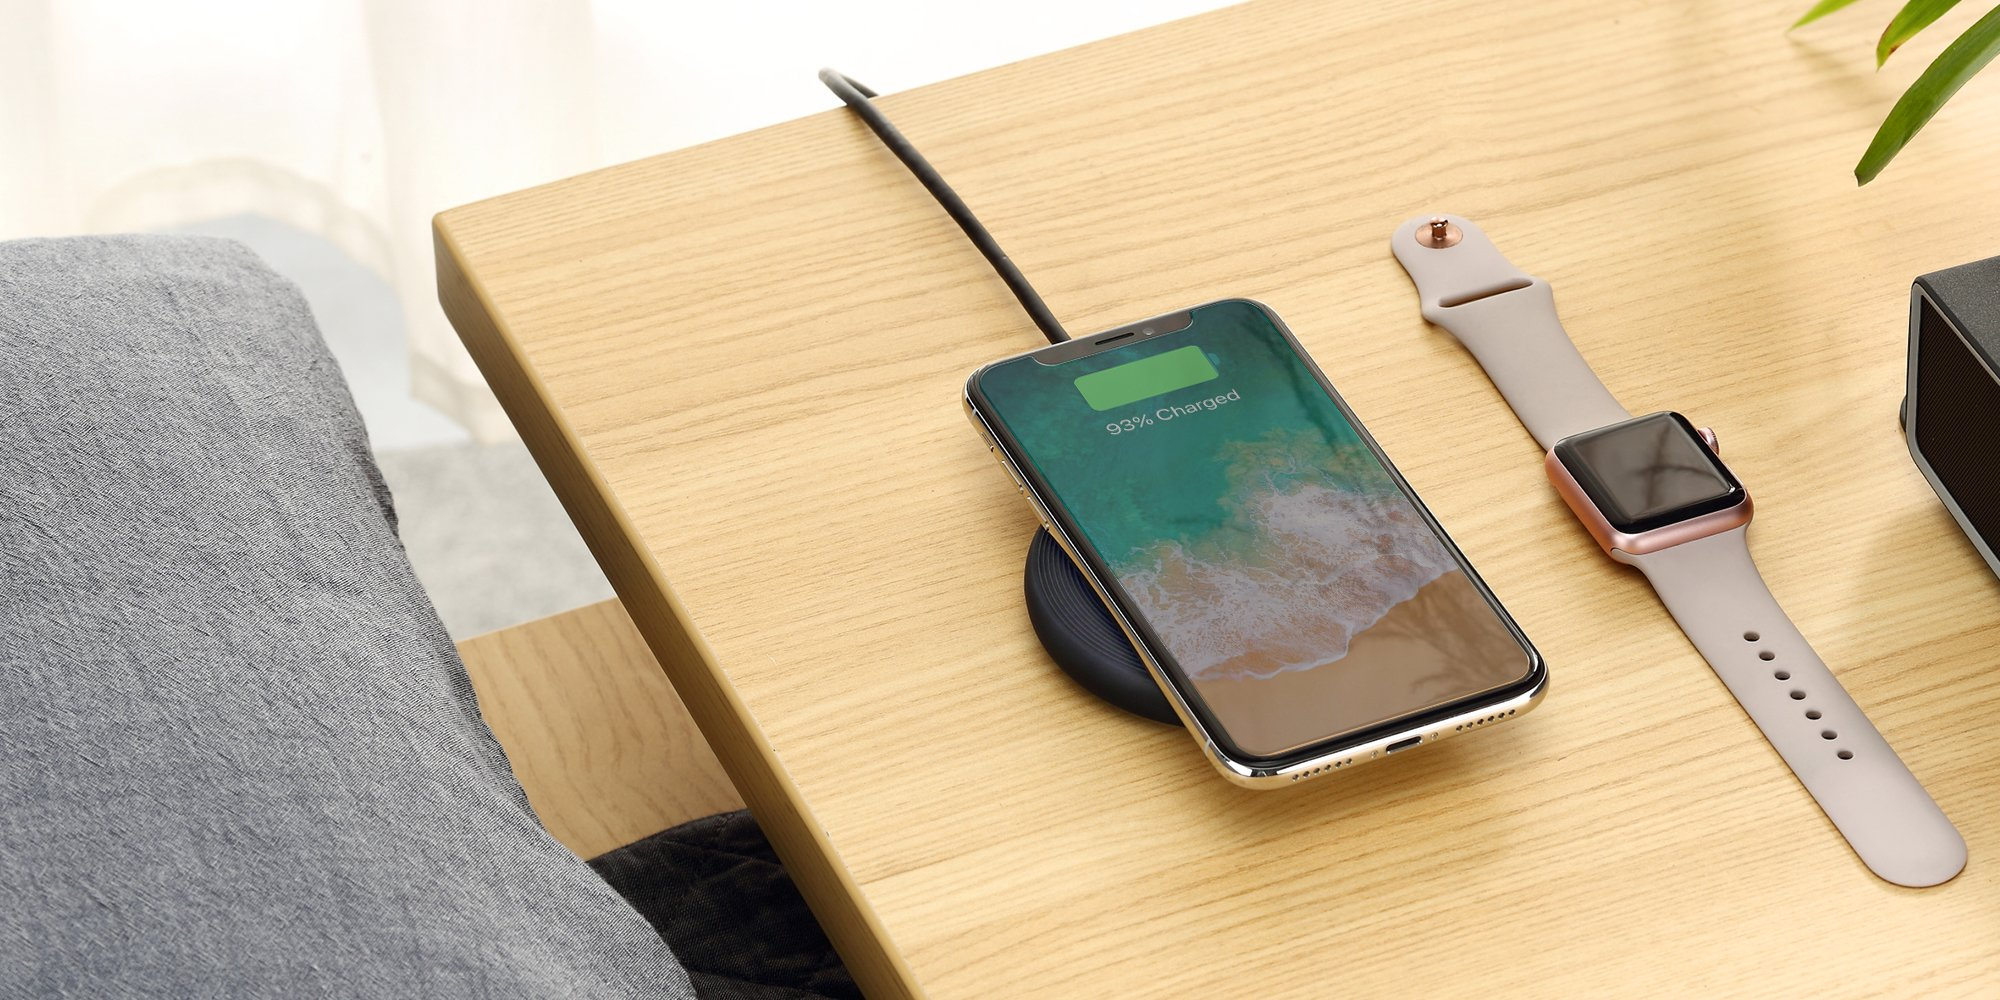 quick-charge-iPhone-Smartphonegreece